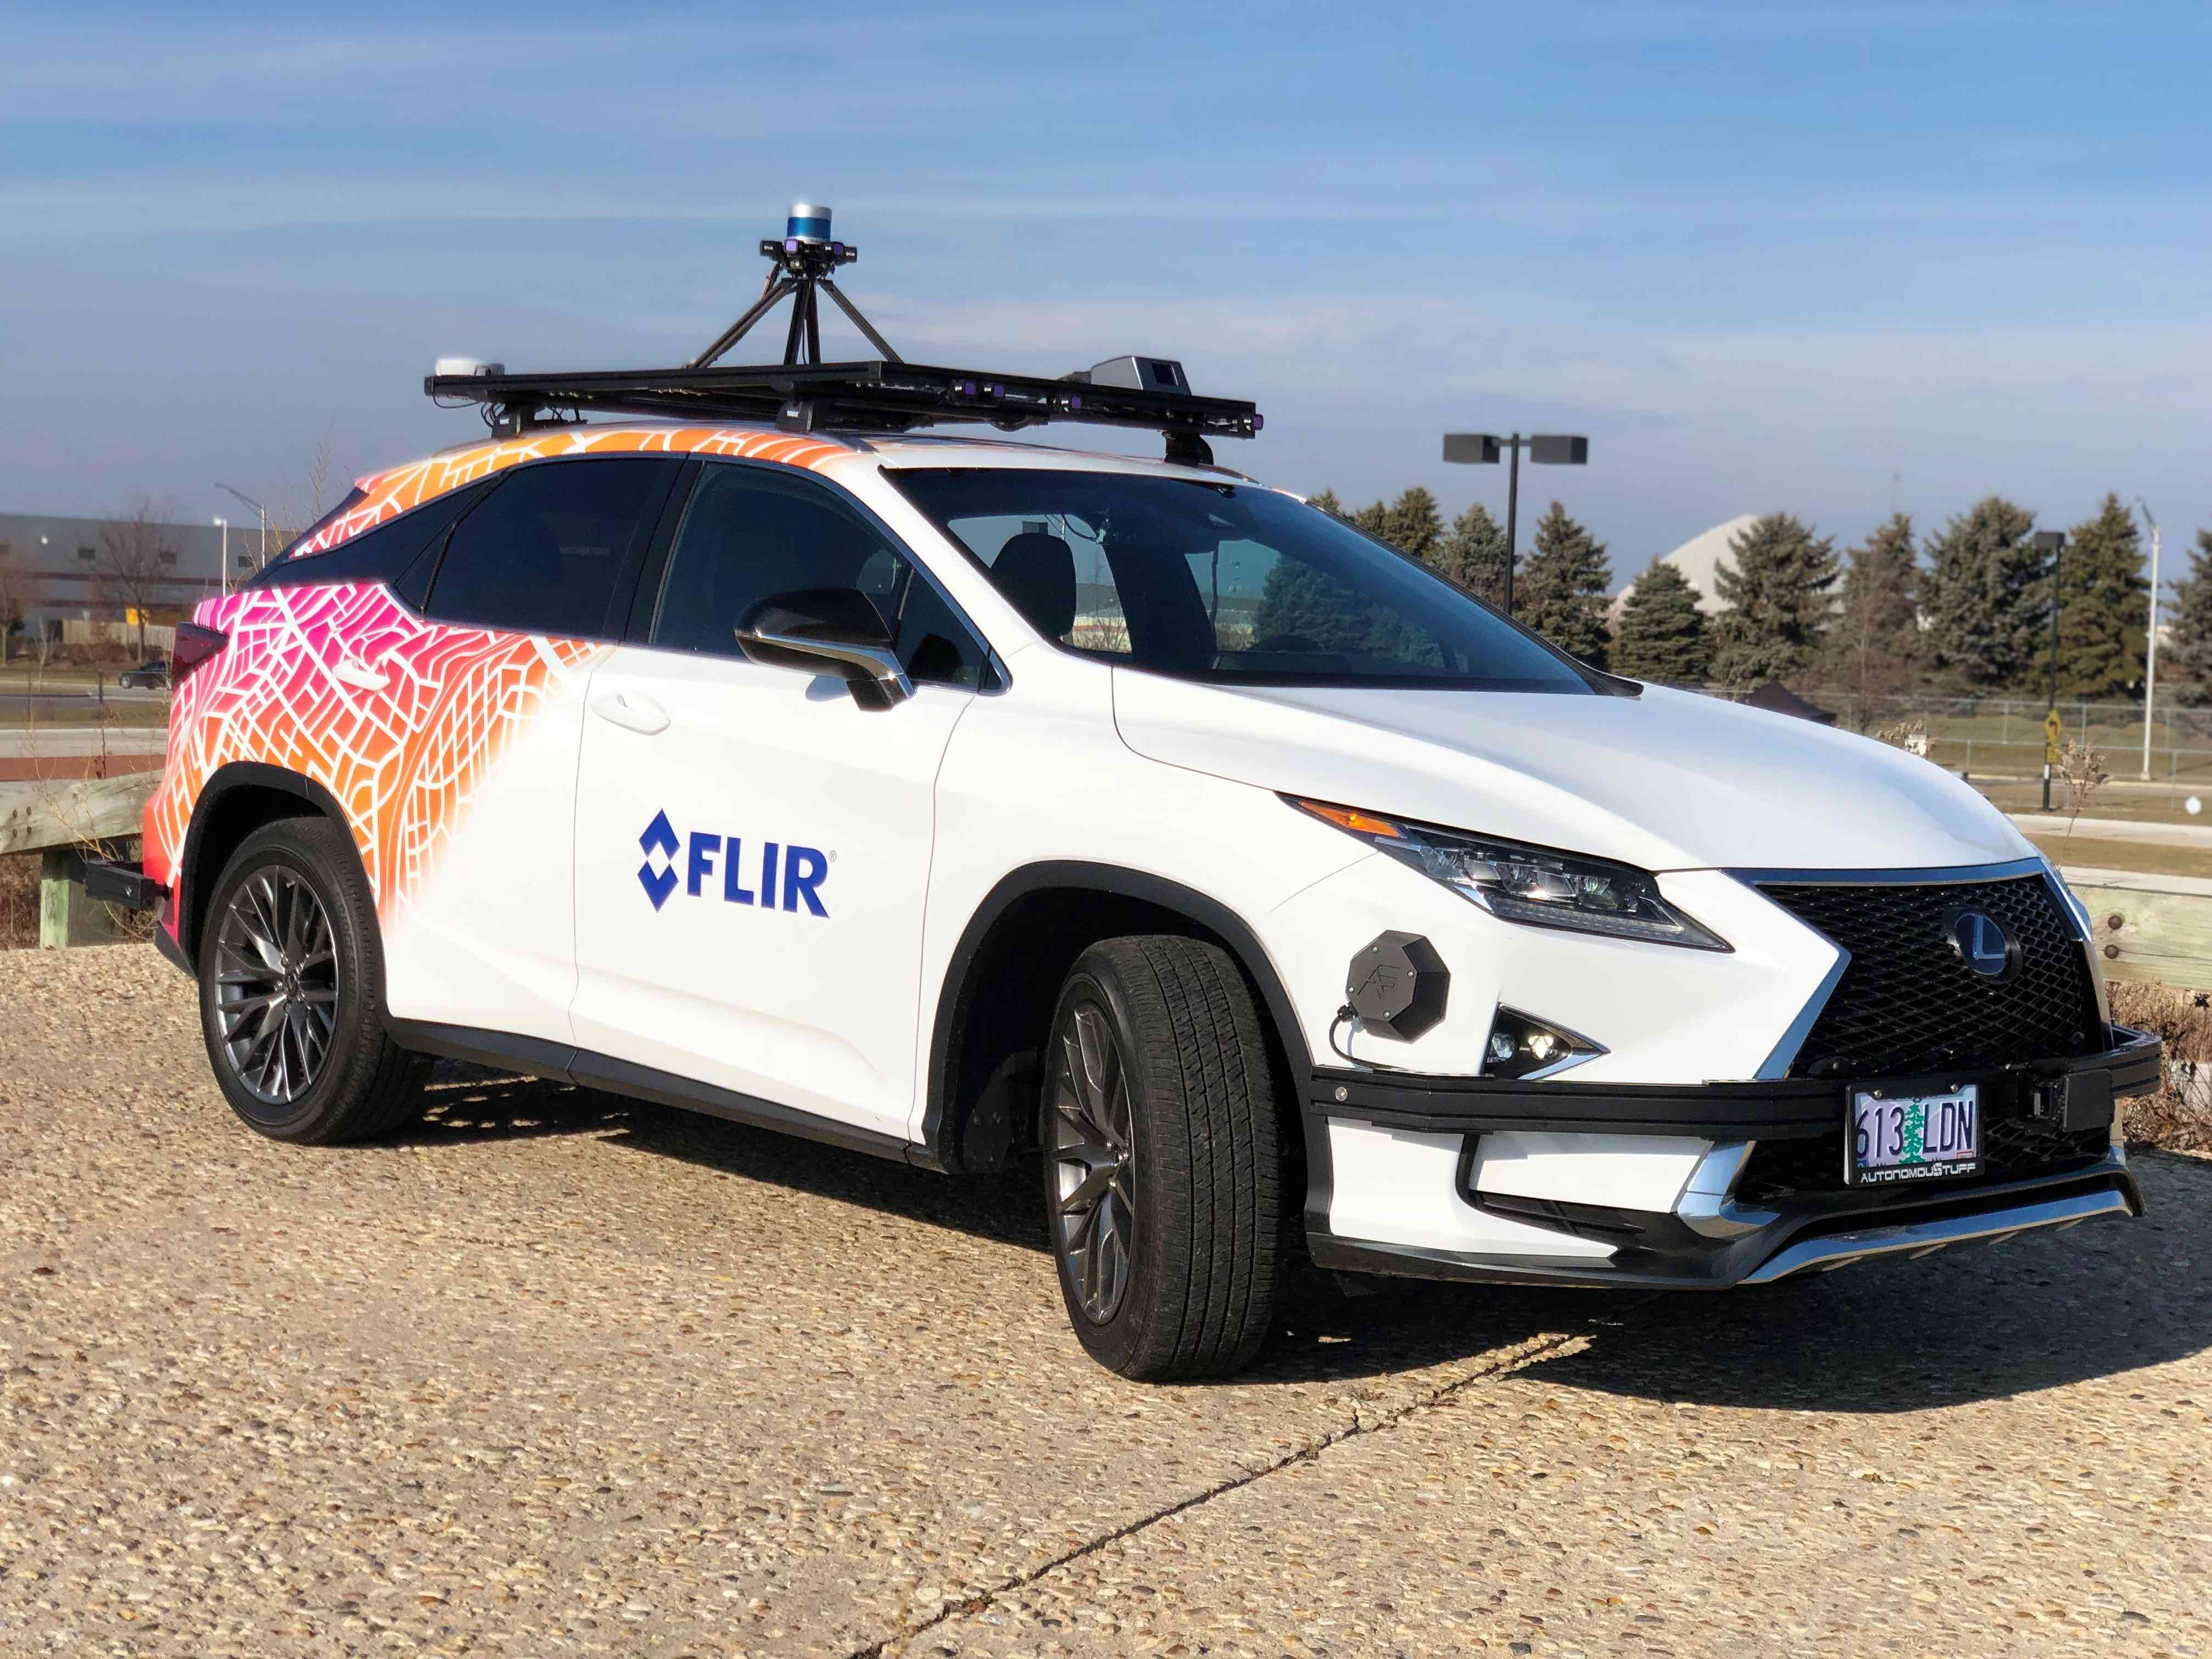 FLIR Offers City-Specific Thermal Imaging Dataset for